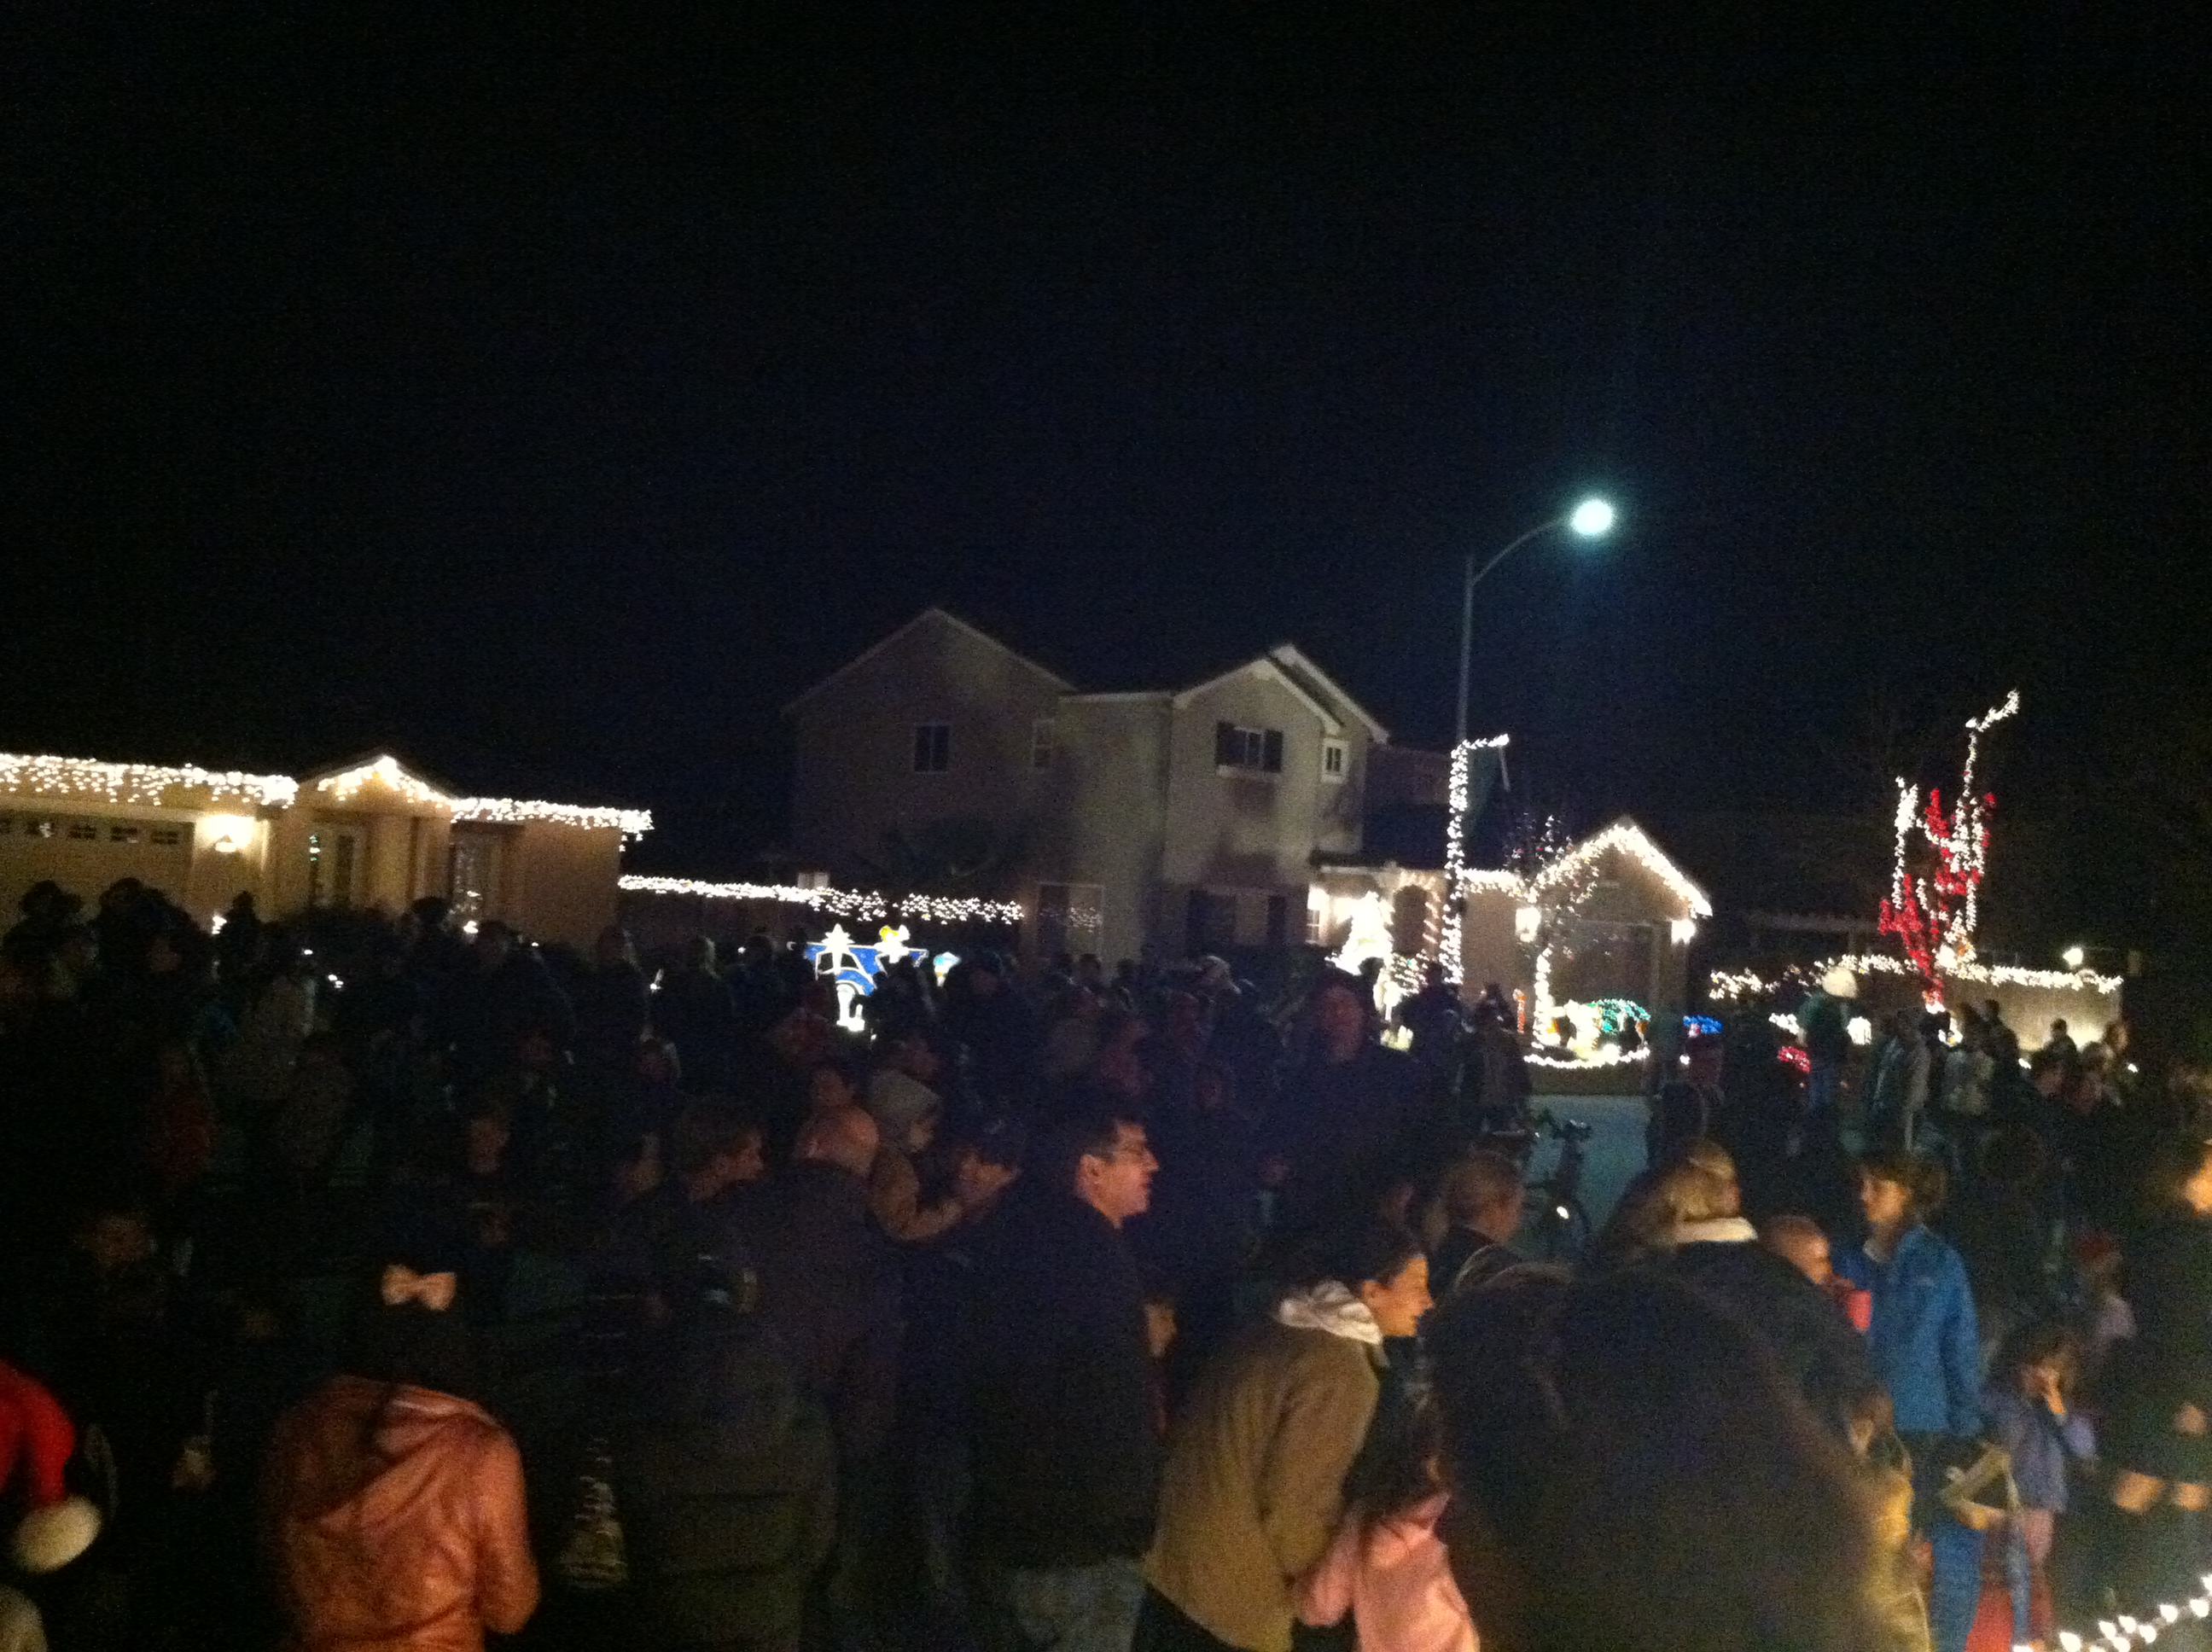 Candy Cane Court attracts hundreds of people each year. (Courtesy photo by Kristy Powell)